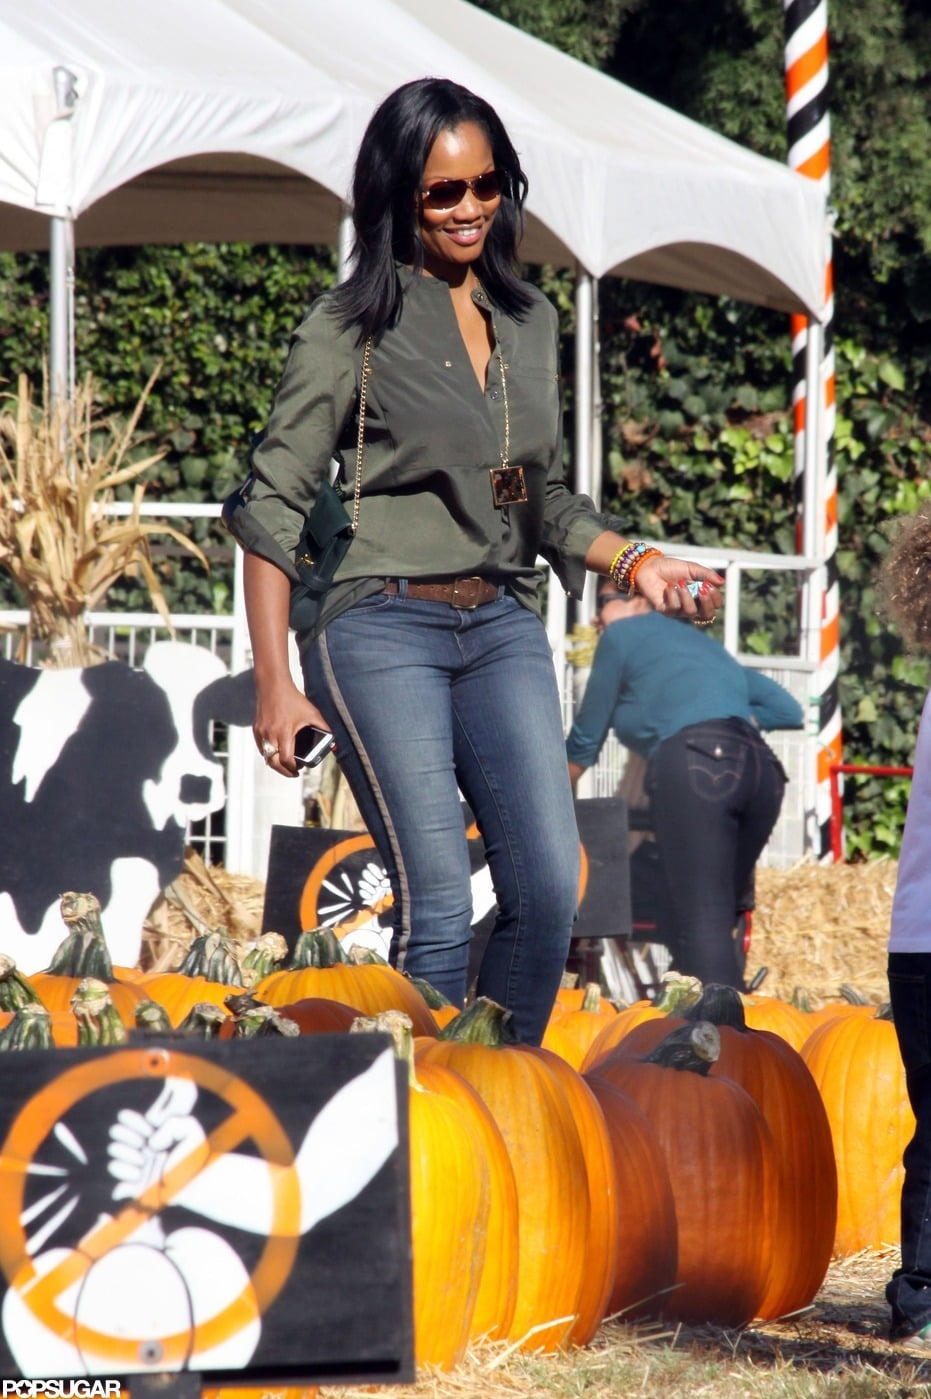 Garcelle Beauvais picked pumpkins at a patch in LA.